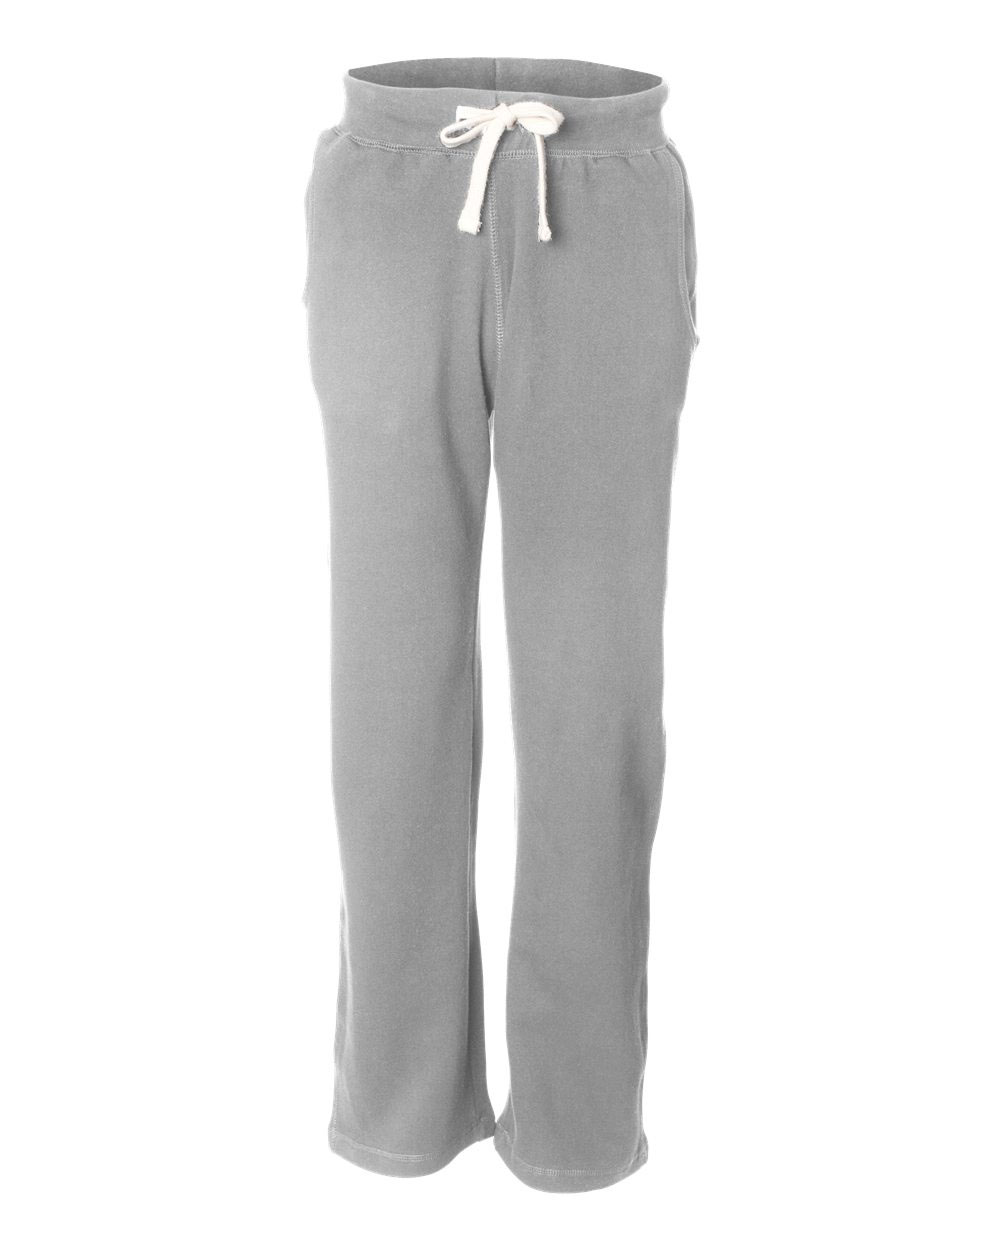 Weatherproof Cross Weave Open Bottom Sweatpants